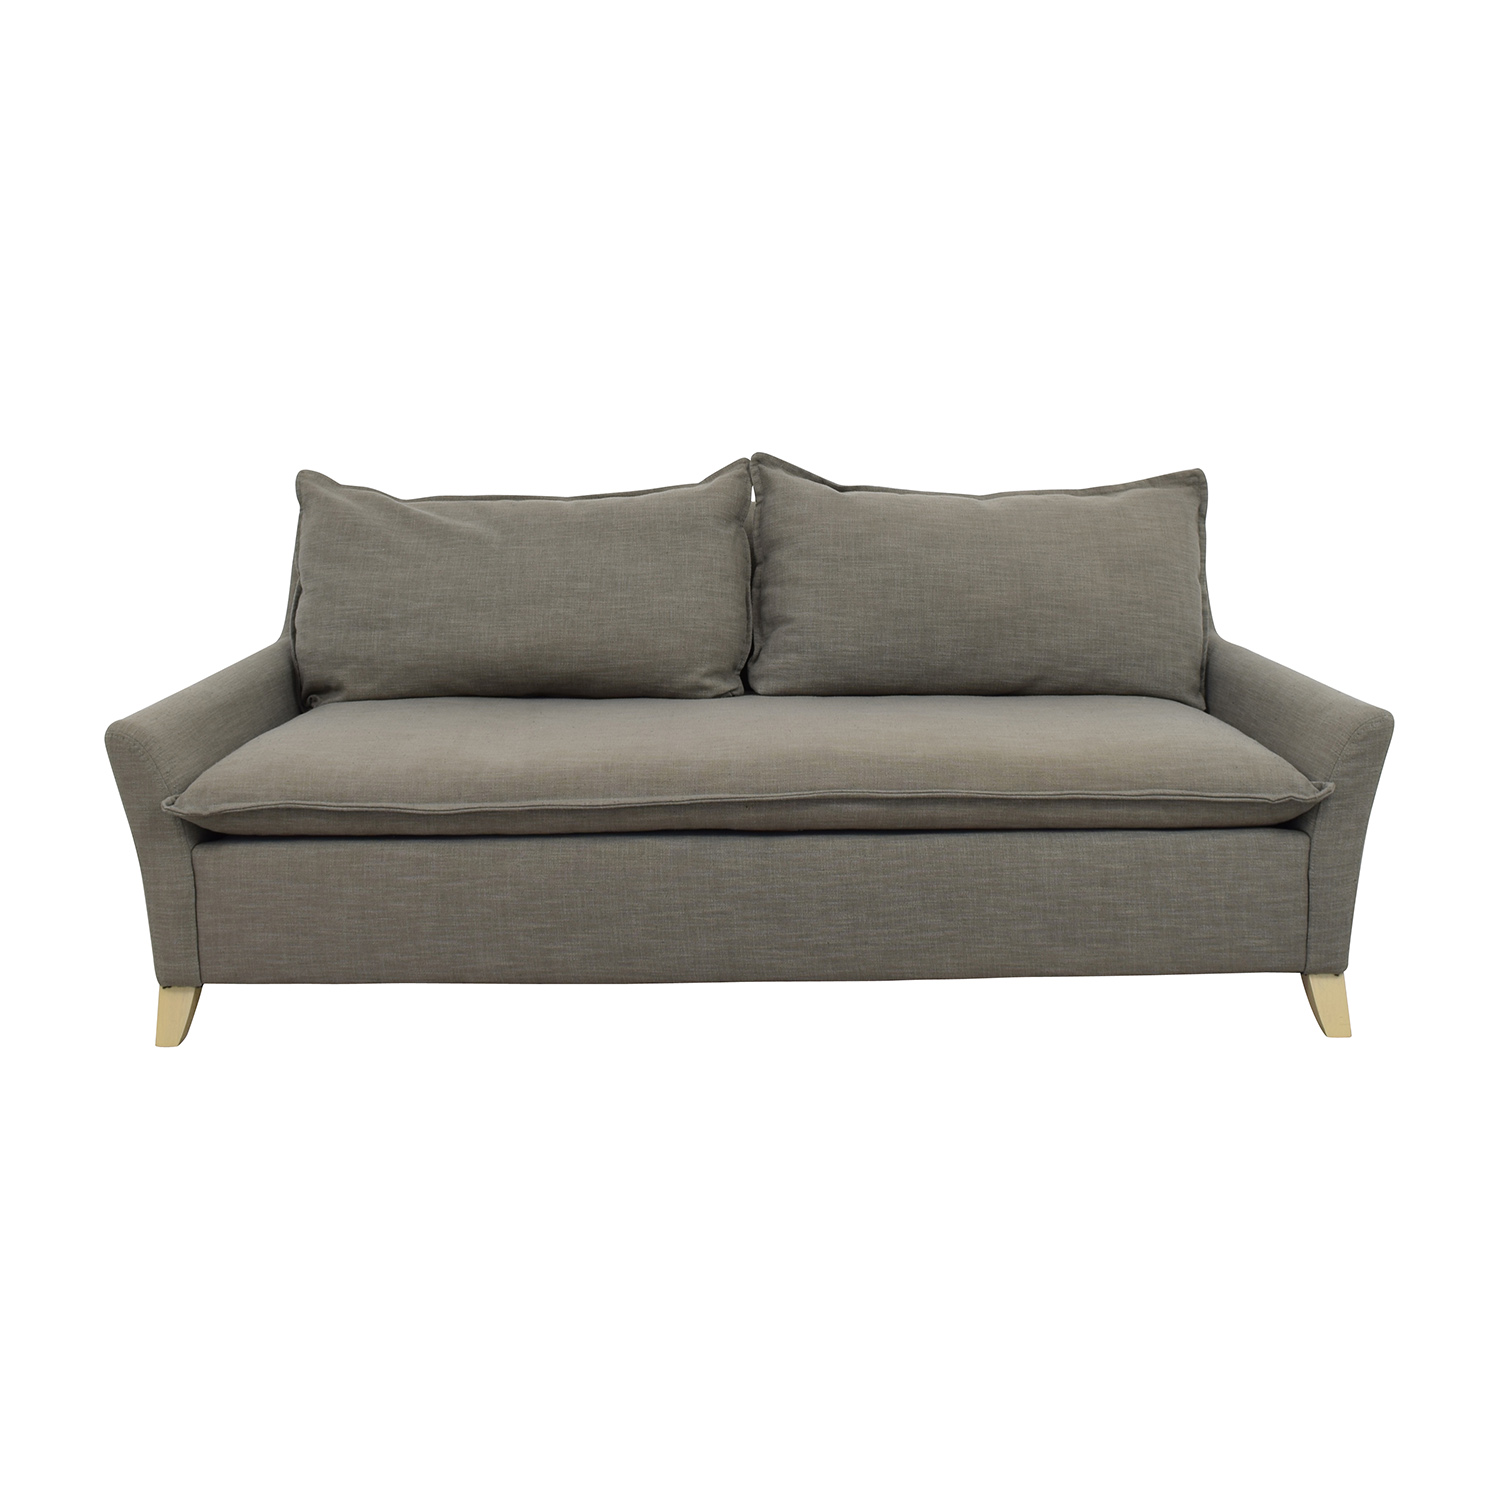 buy West Elm Bliss Sofa West Elm Classic Sofas